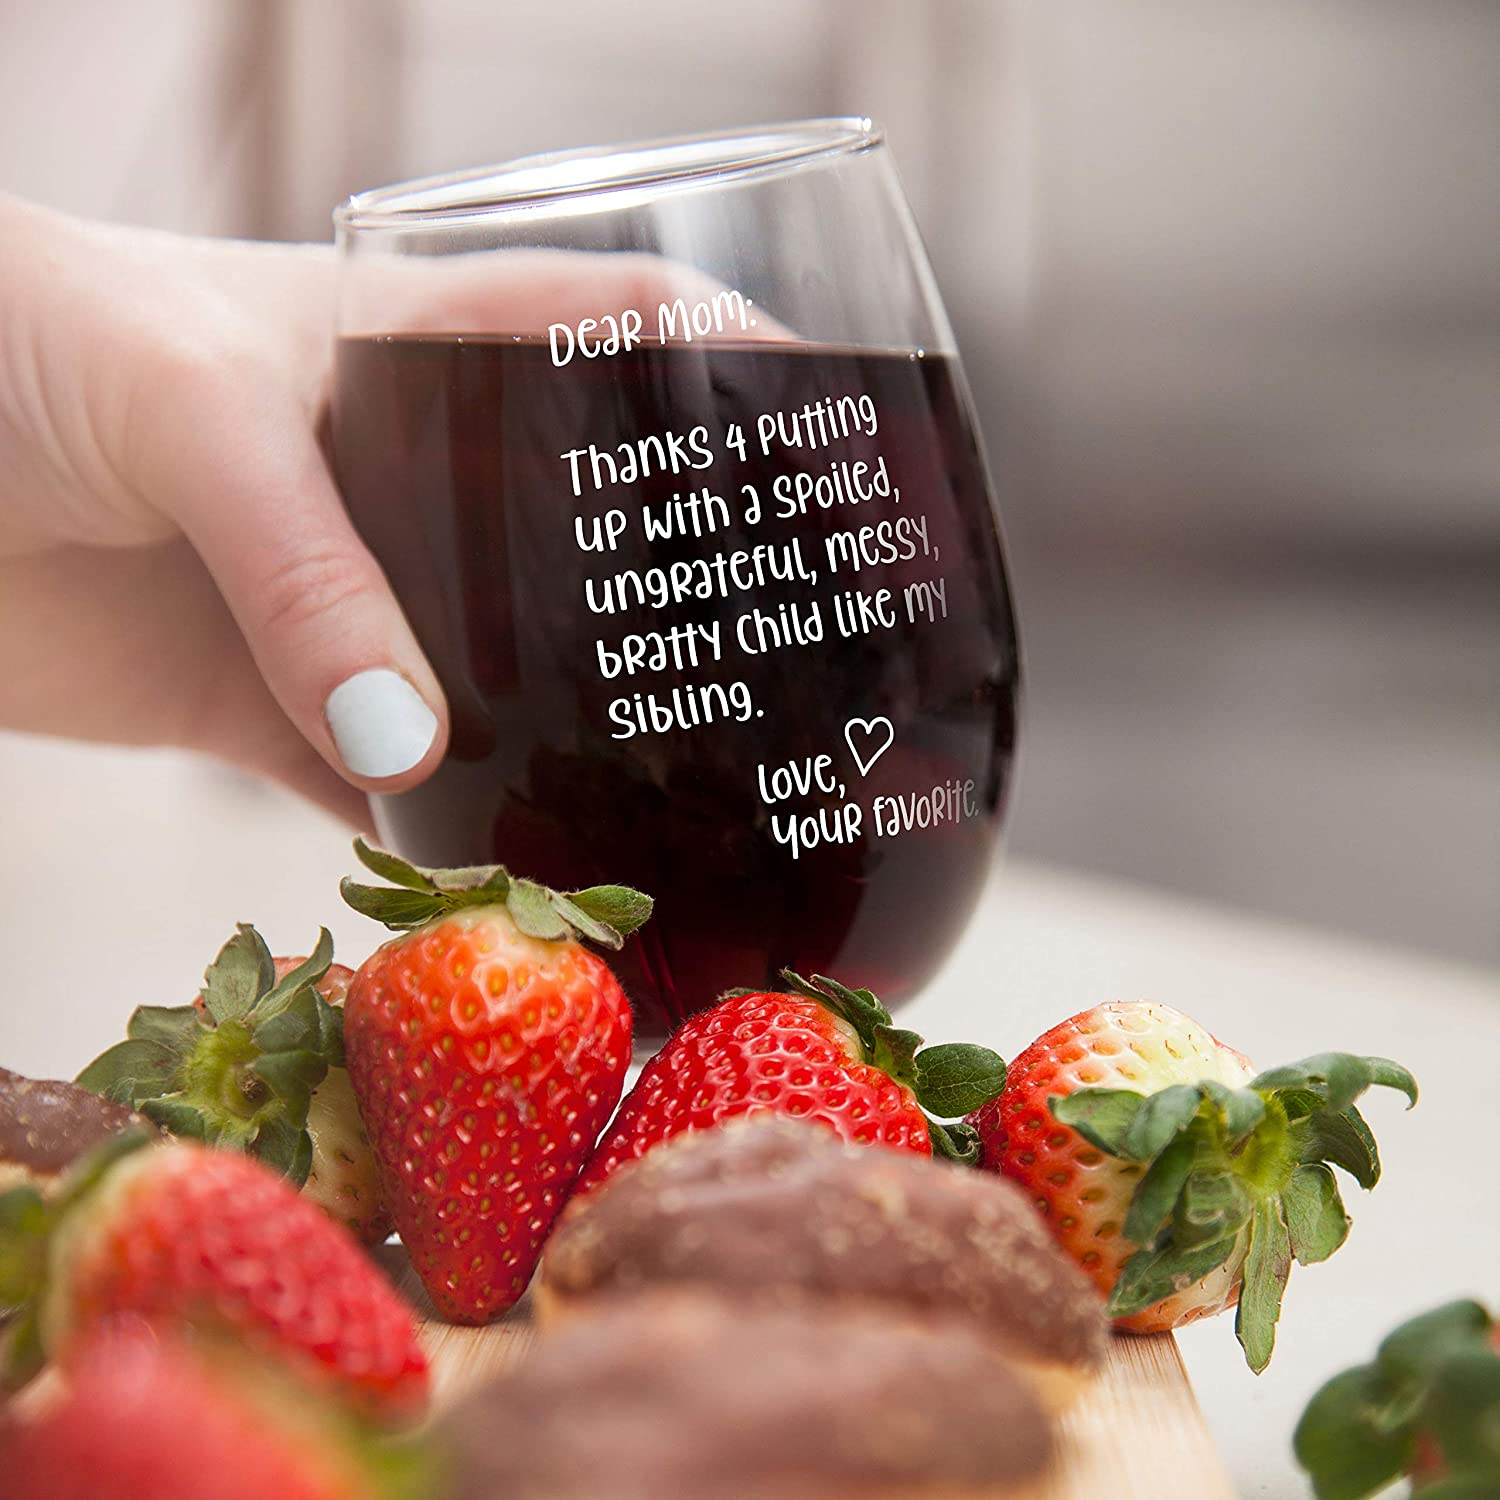 Evening Mug Love Best Birthday Gifts for Women 15 oz Stemless Wine Glass Your Favorite Funny Inspirational and Sarcasm Mothers Day Gift Dear Mom: Thanks 4 putting up with a spoiled